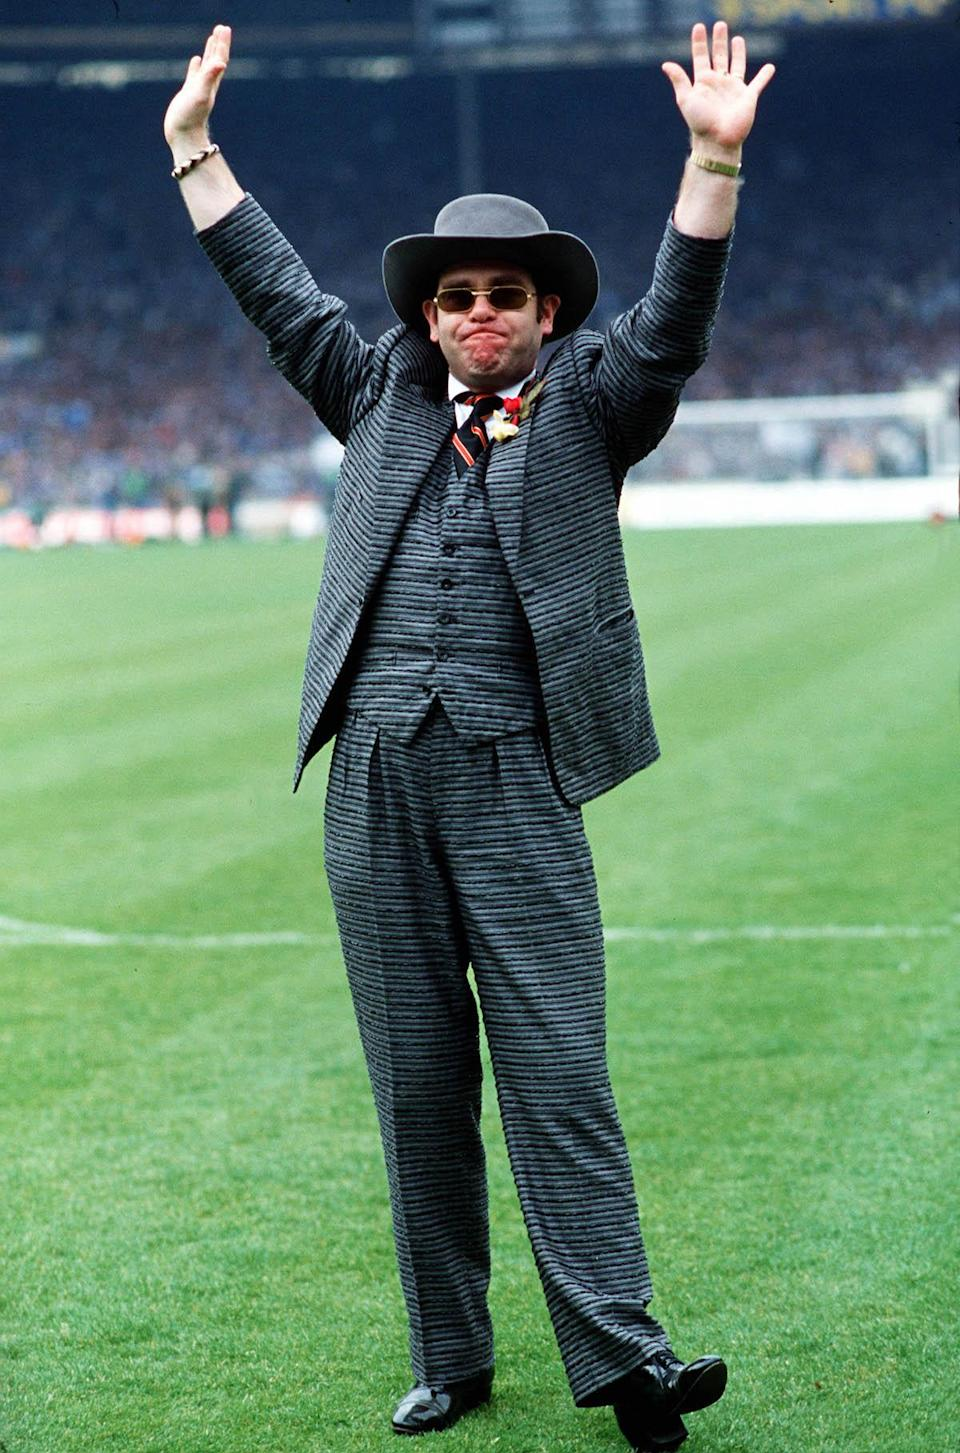 <p>Elton John in a fine English-style suit, waves to the fans at London's Wembley Stadium in 1984. (Photo: Getty Images) </p>